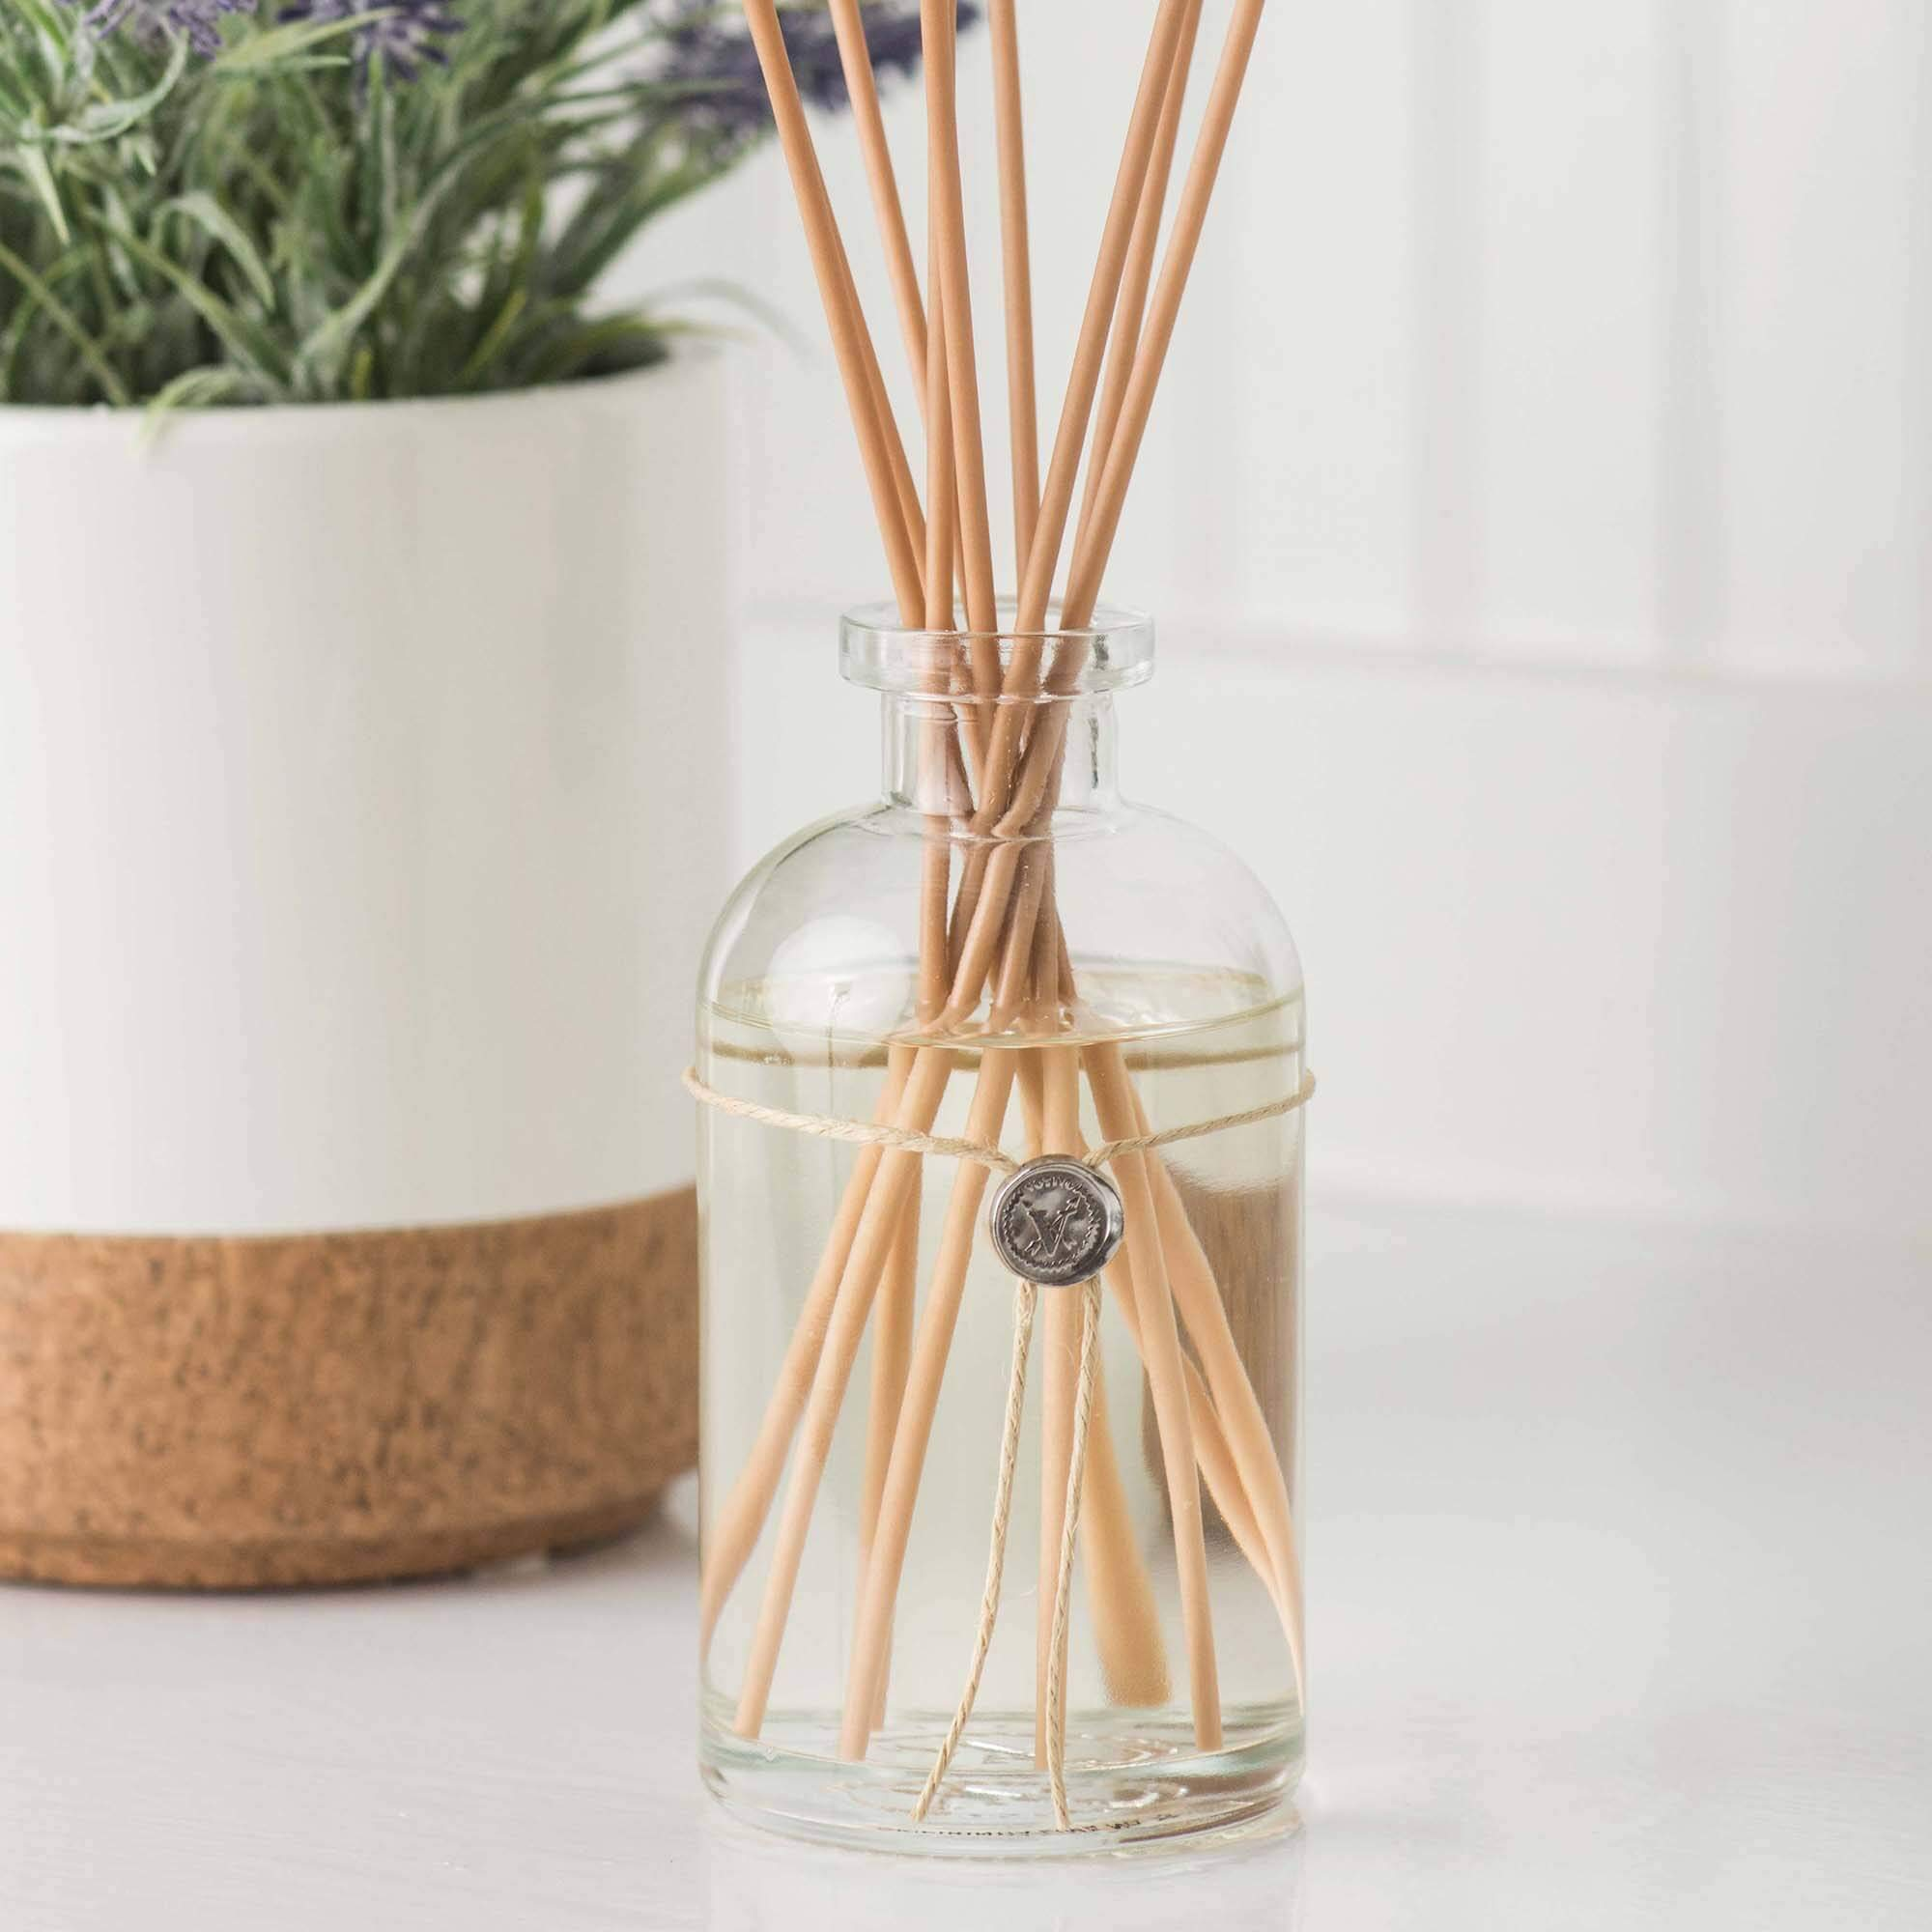 Votivo Aromatic Reed Diffuser - Red Currant by Votivo (Image #7)